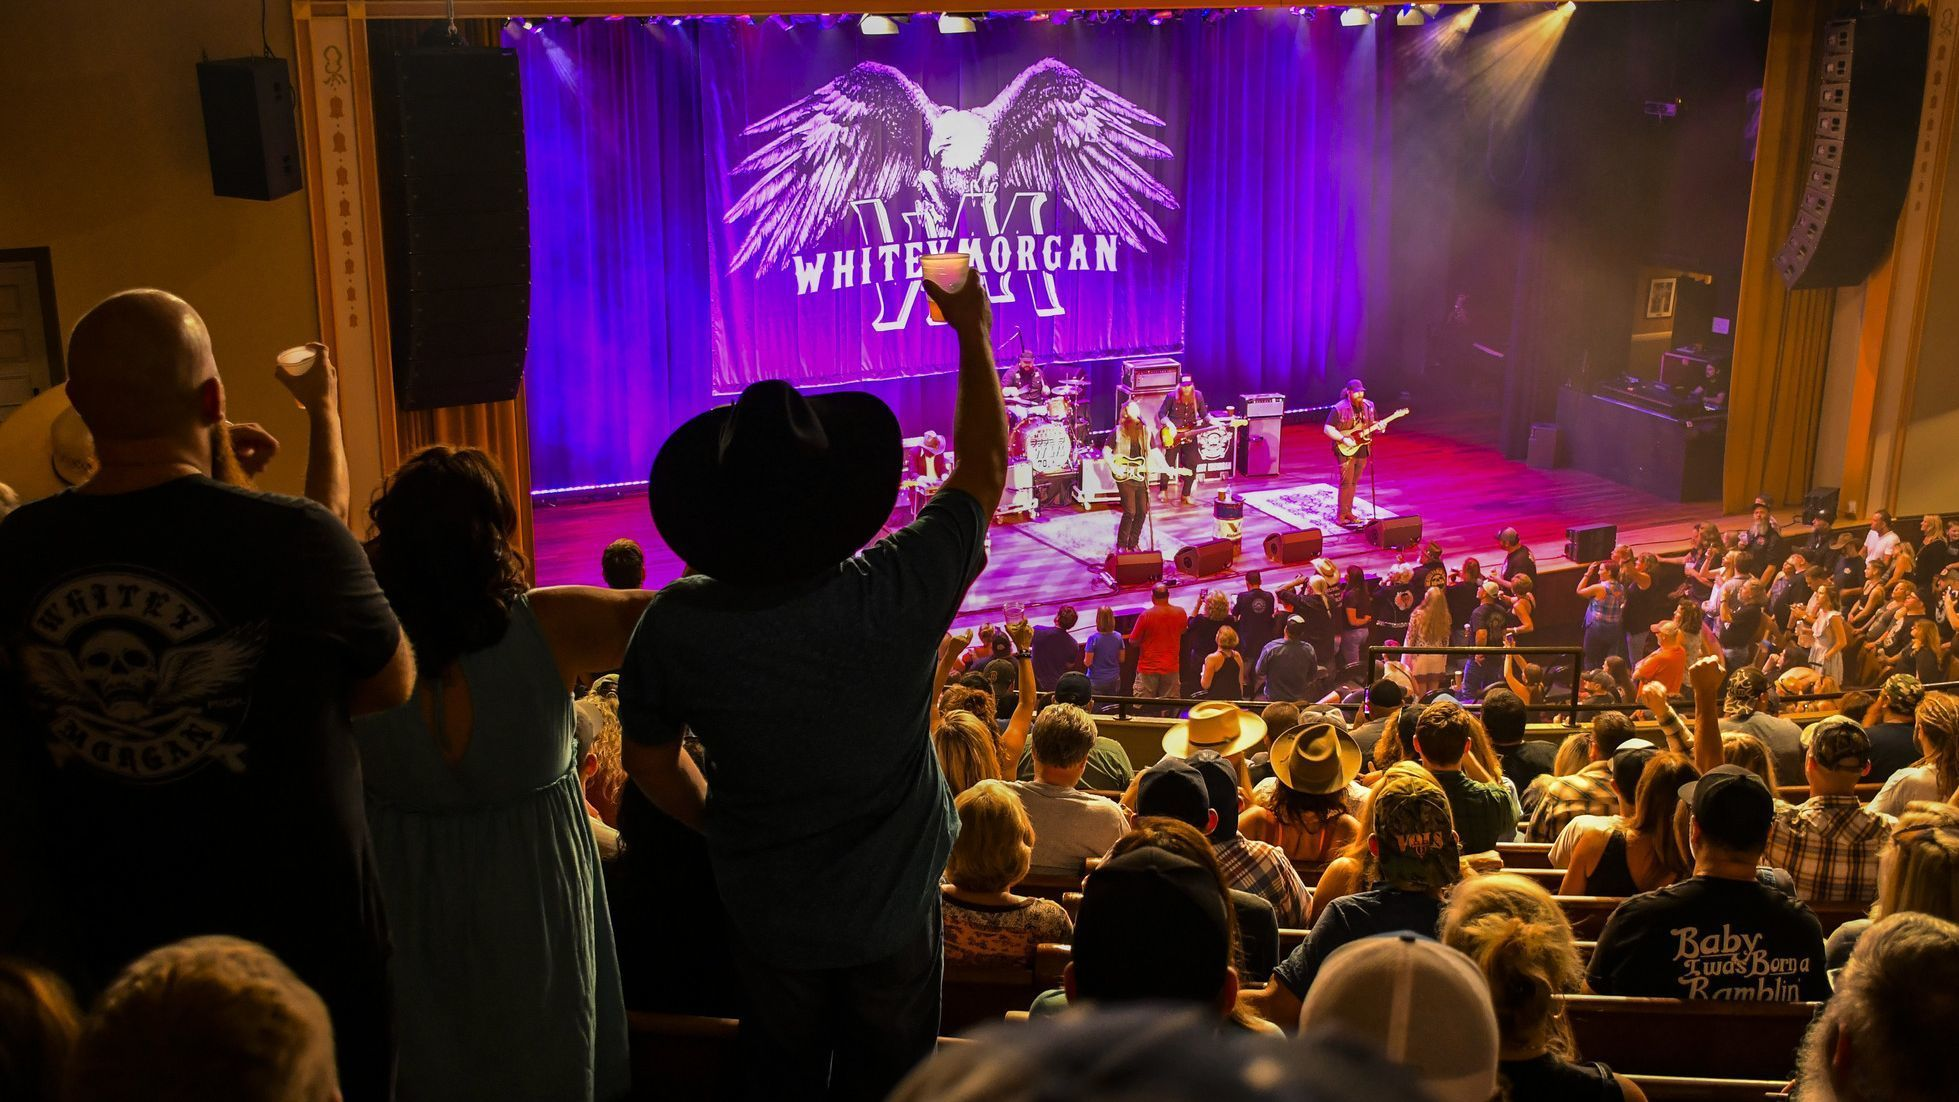 NASHVILLE, TN - Whitey Morgan and his band, the 78s, play Nashville's Ryman Auditorium.